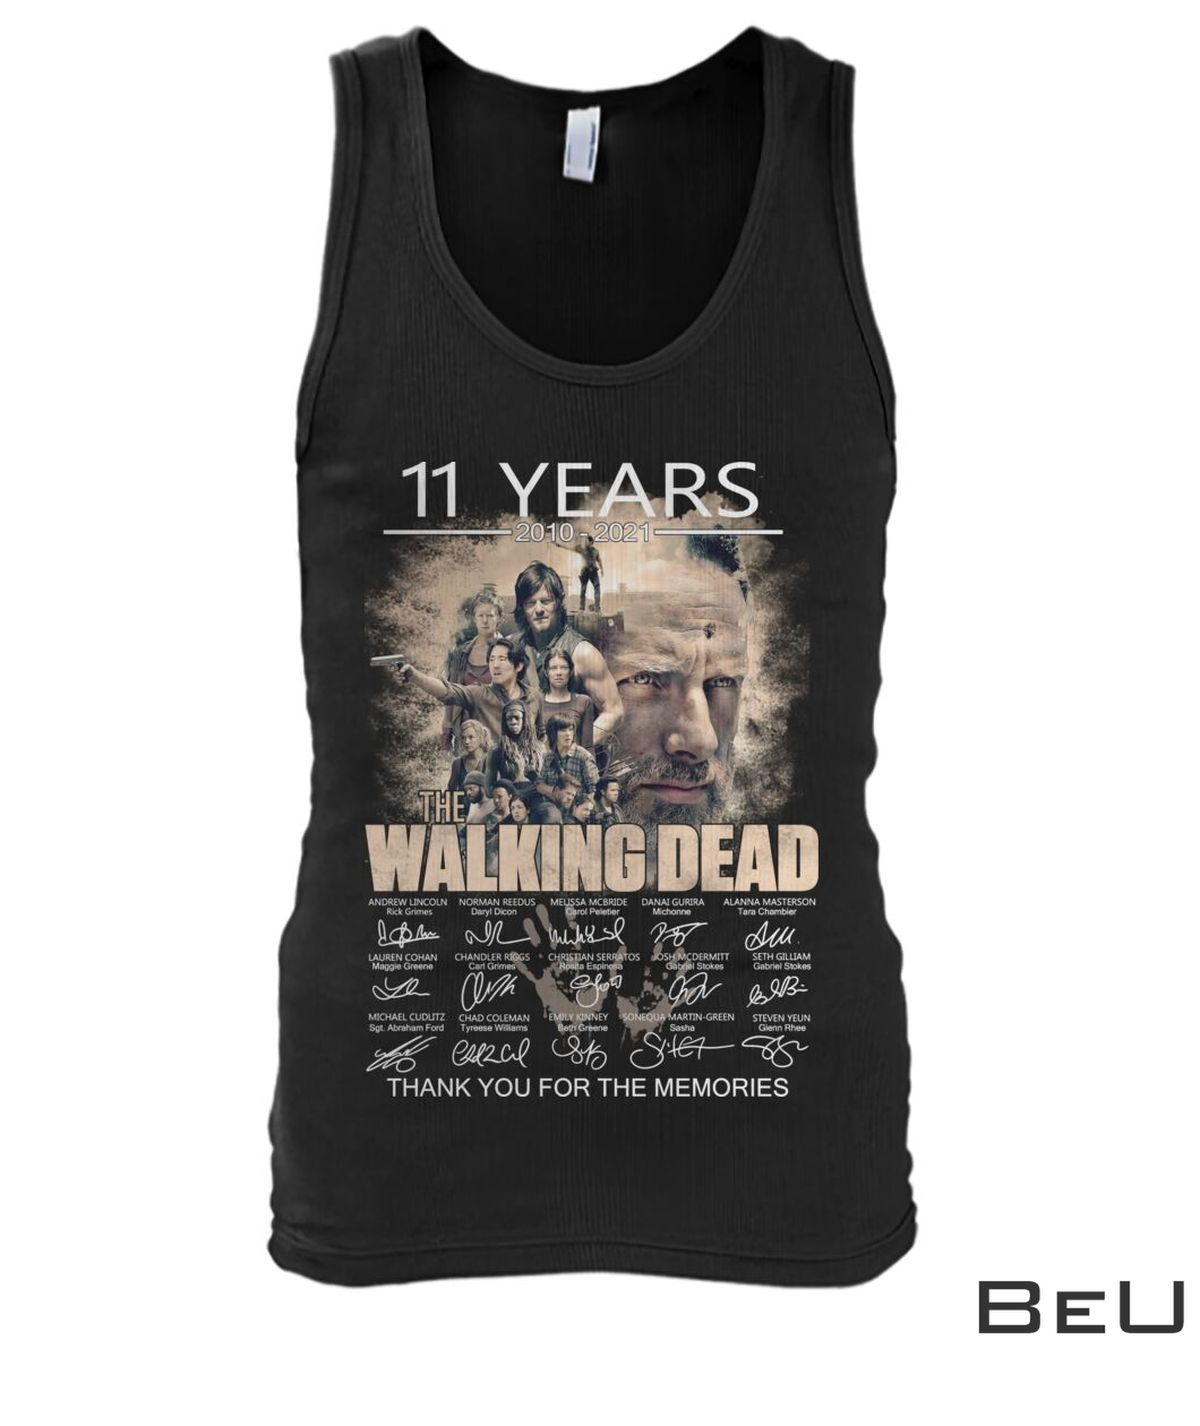 11 Years 2010 2021 The Walking Dead Thank You For The Memories Shirt x